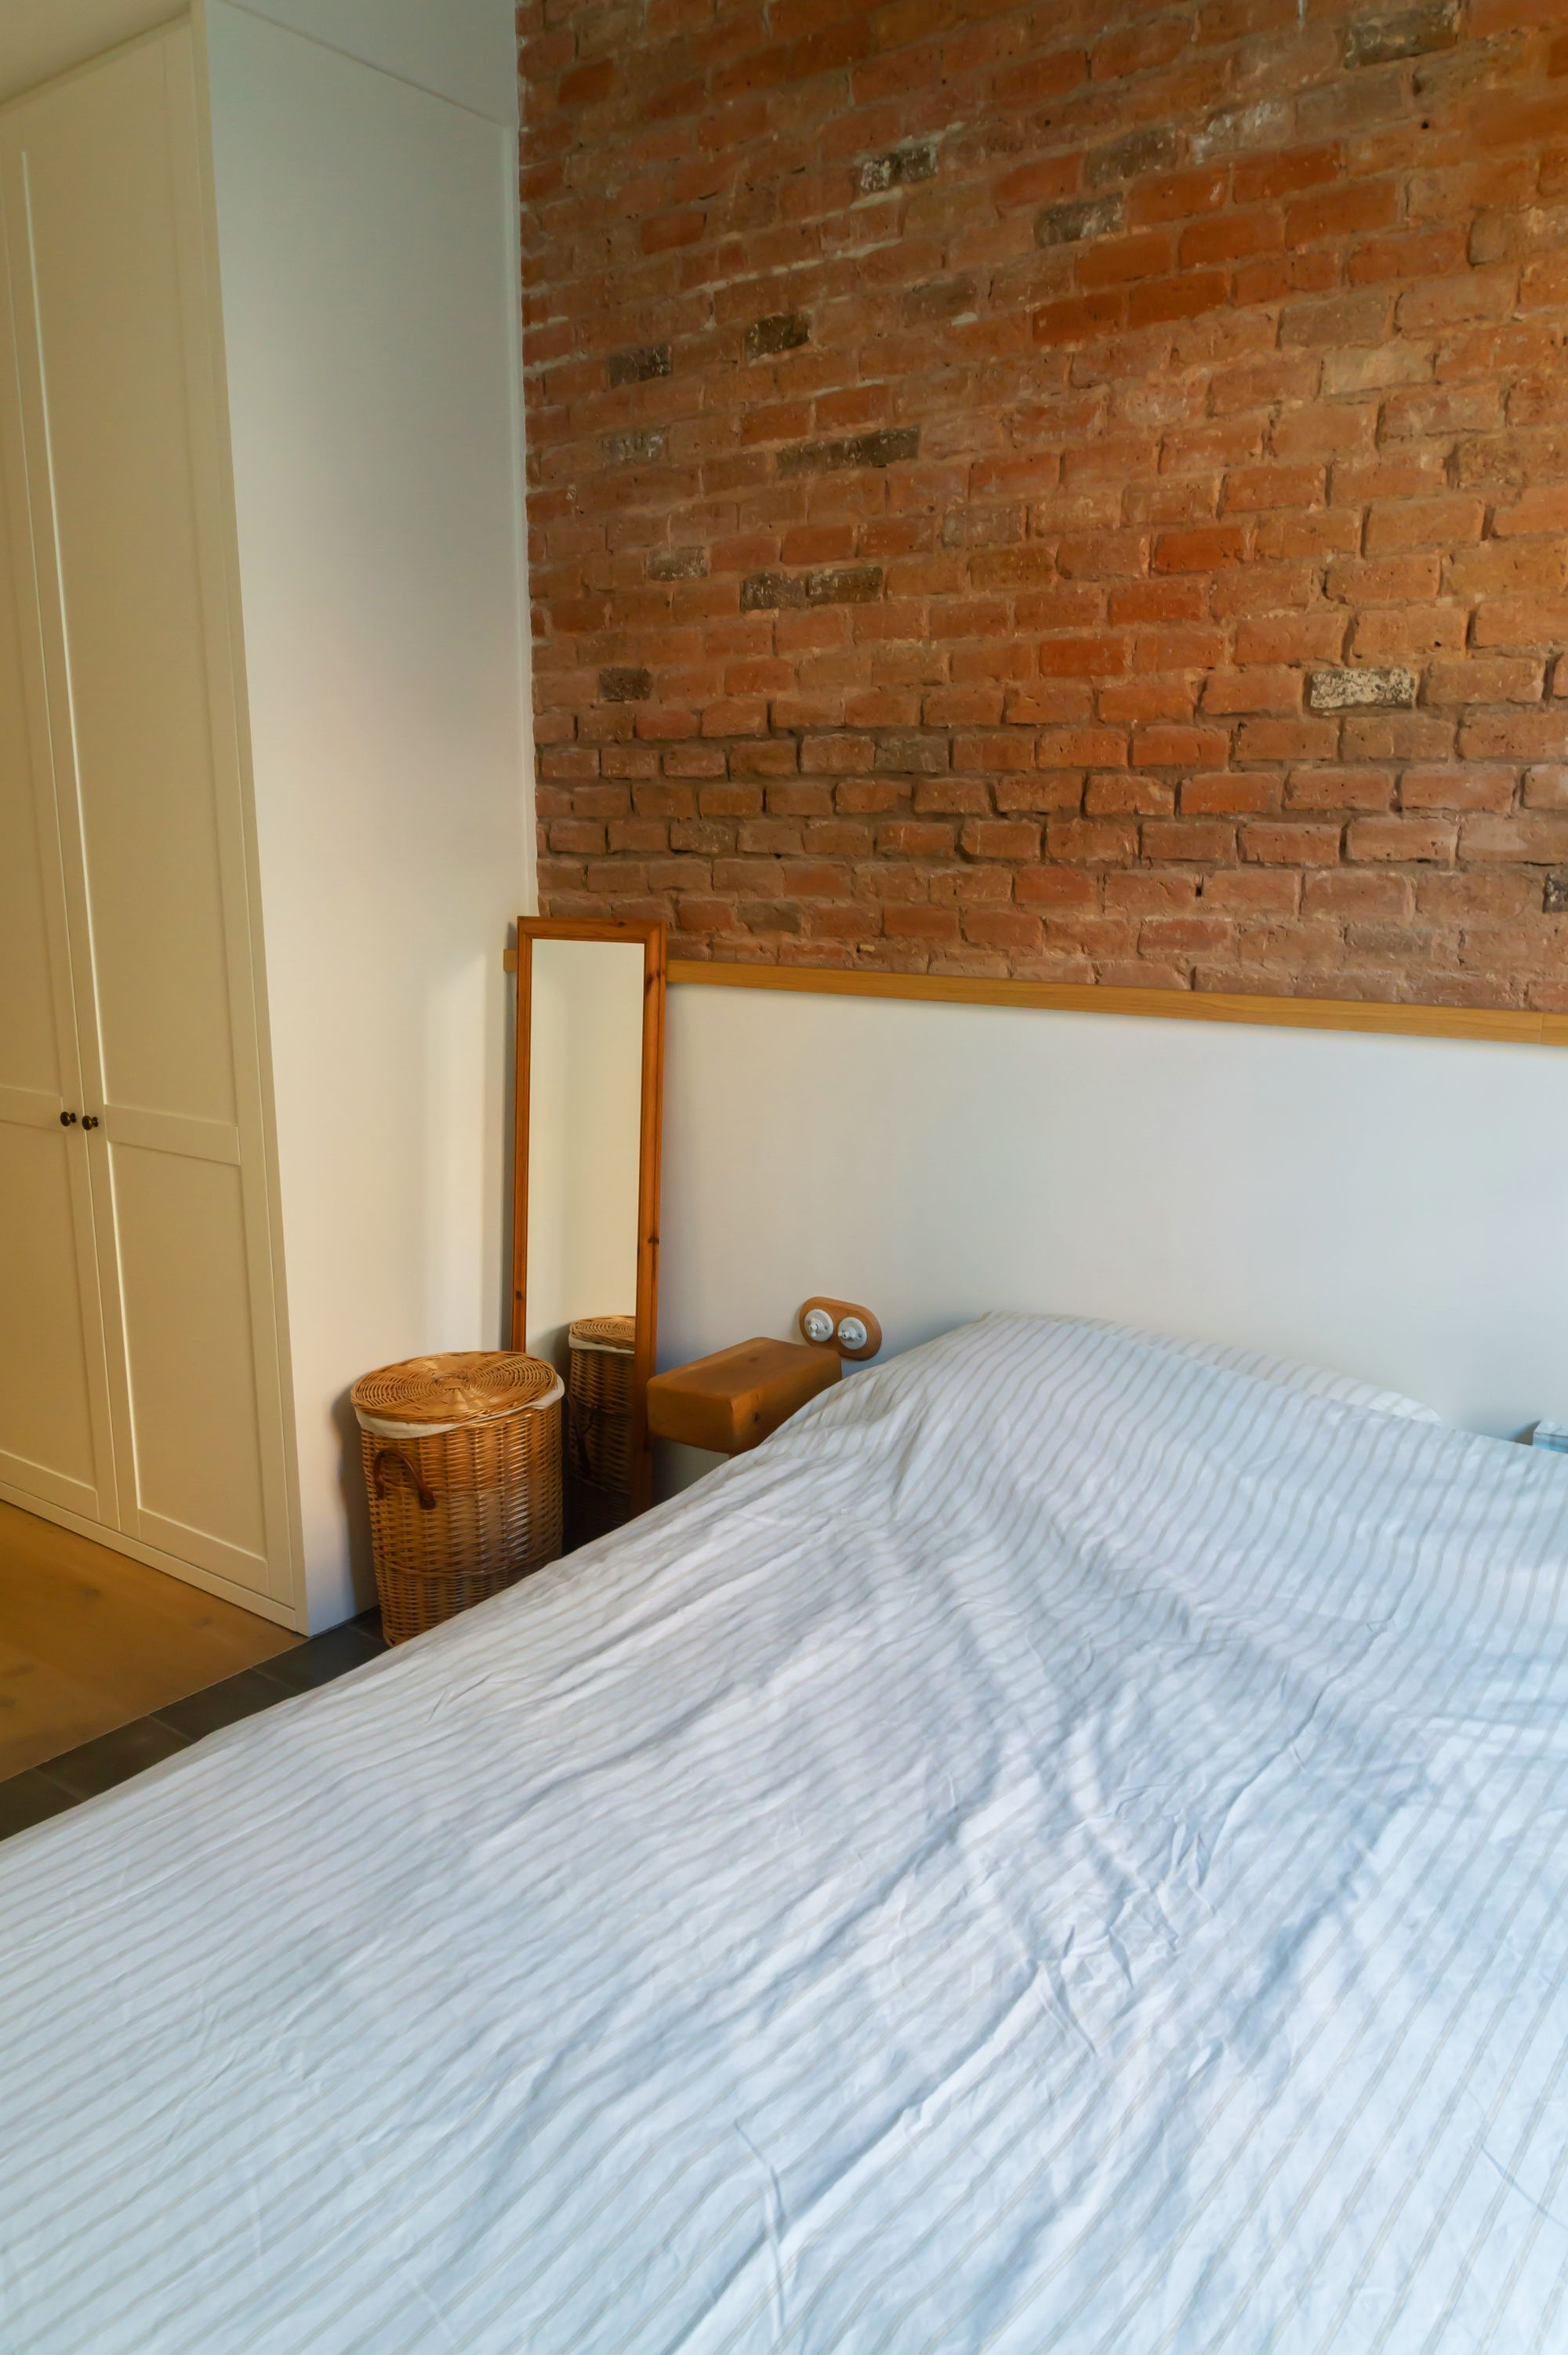 Gemma home tour Barcelona bedroom exposed brick wall